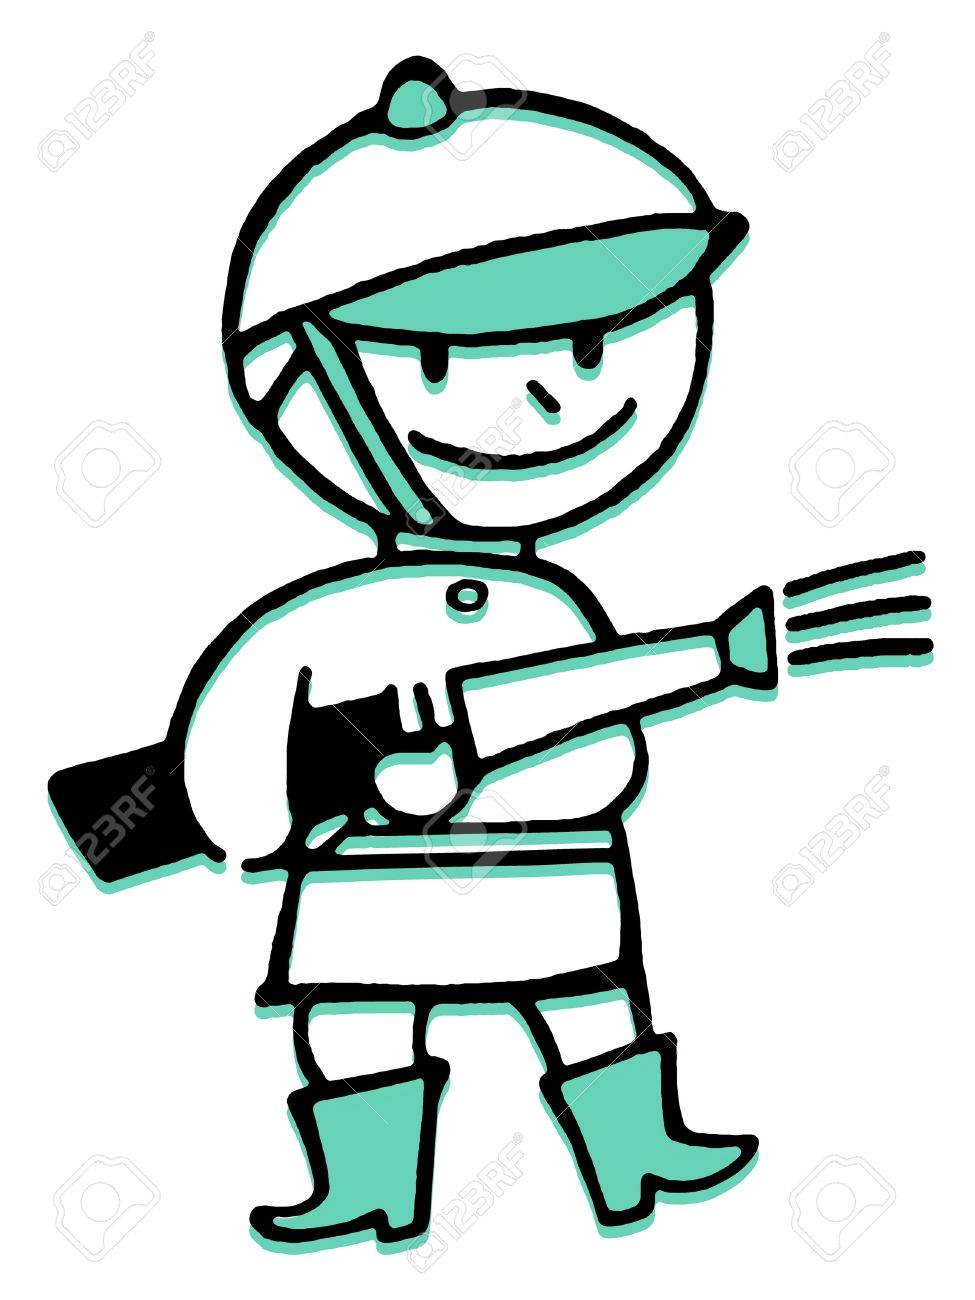 975x1300 A Cartoon Style Drawing Of A Fireman Stock Photo, Picture